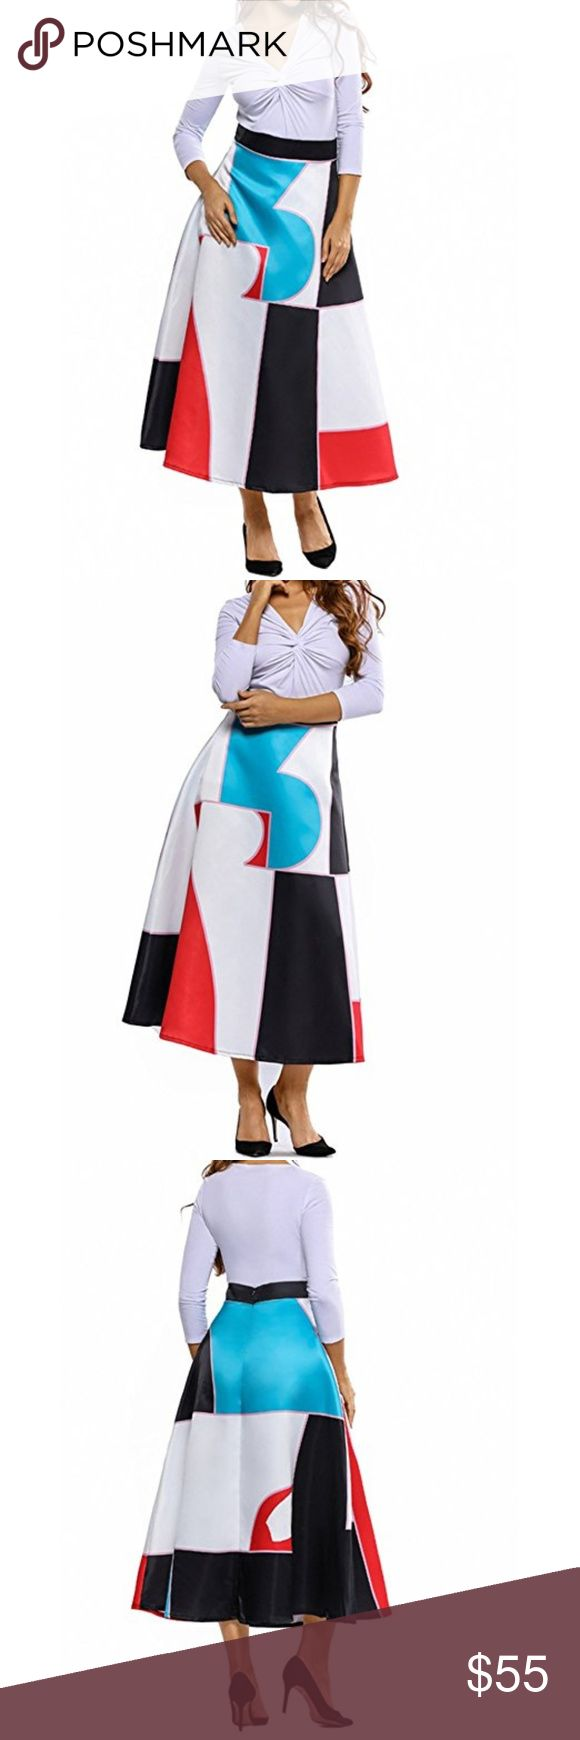 Women's Midi Multi Print Skirt Gorgeous elastic waist band, floral print, and flared Adult skirt cut with an elegant length and stylish African print,pair your skirt with fashion top for a stylish silhouette Xcel Couture Skirts